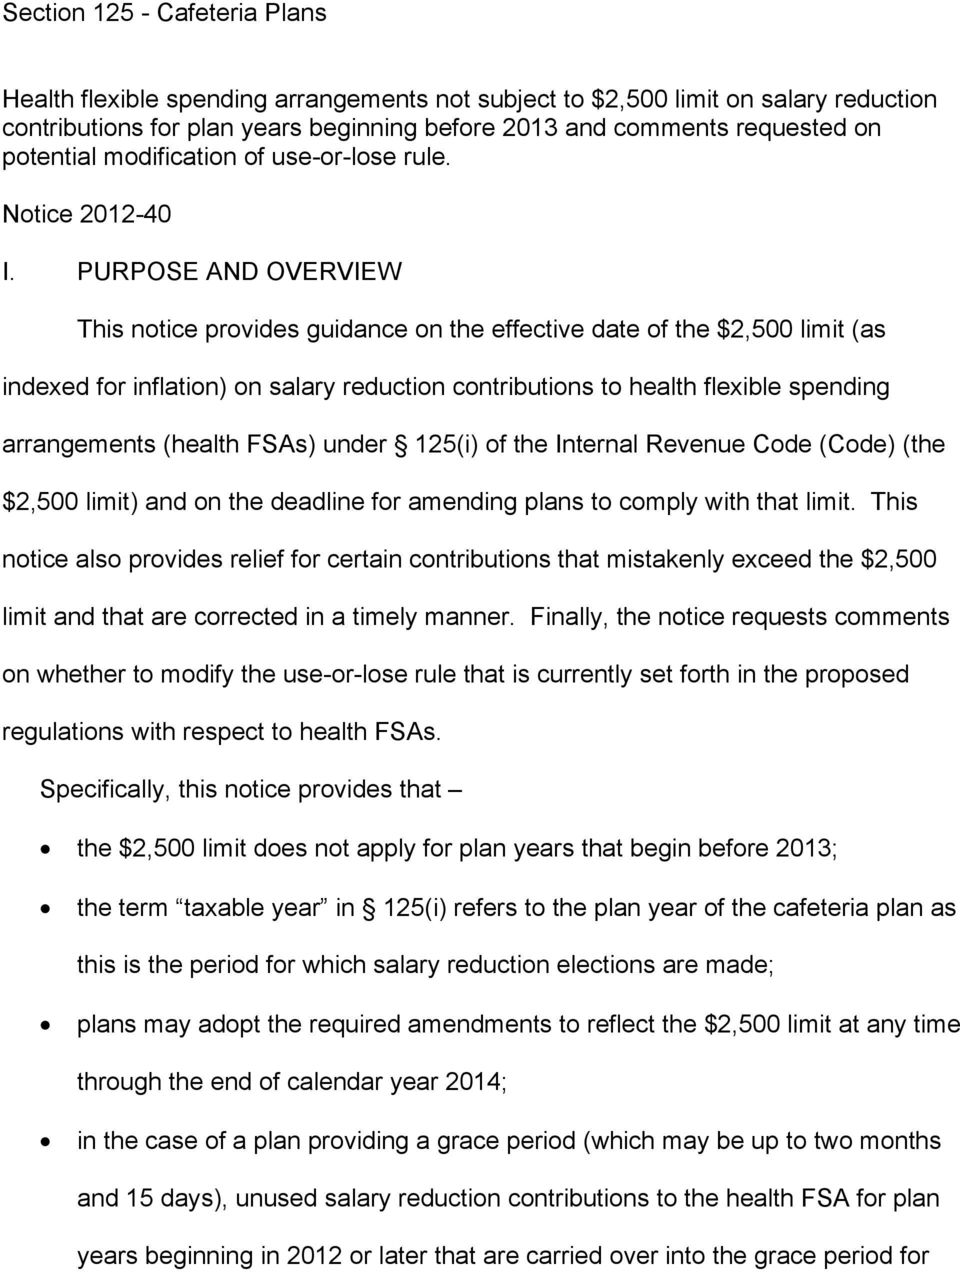 PURPOSE AND OVERVIEW This notice provides guidance on the effective date of the $2,500 limit (as indexed for inflation) on salary reduction contributions to health flexible spending arrangements